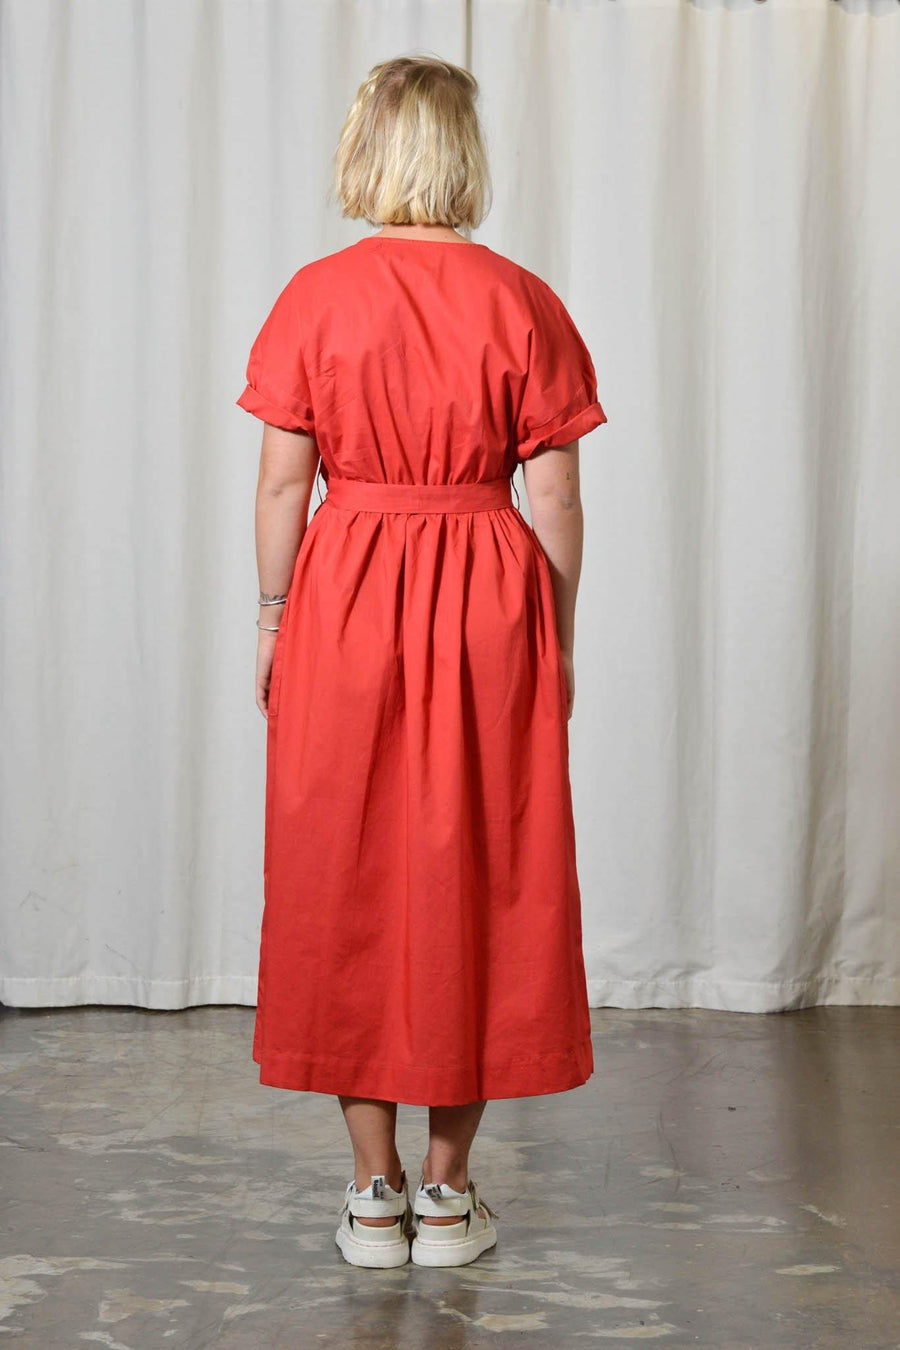 Red Studio Dress - Artclub and Friends